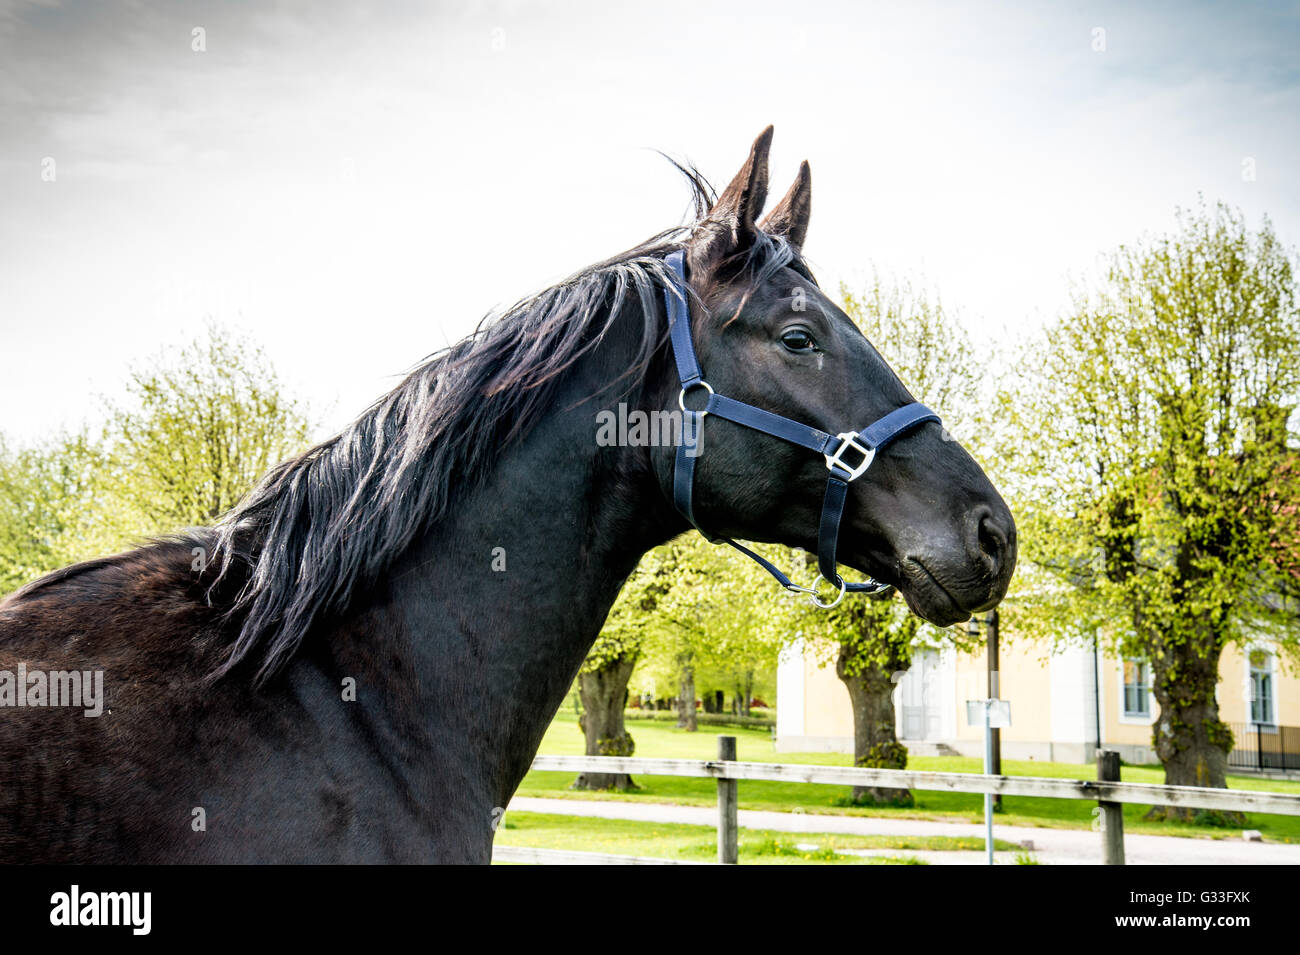 Stallion Photo Stock